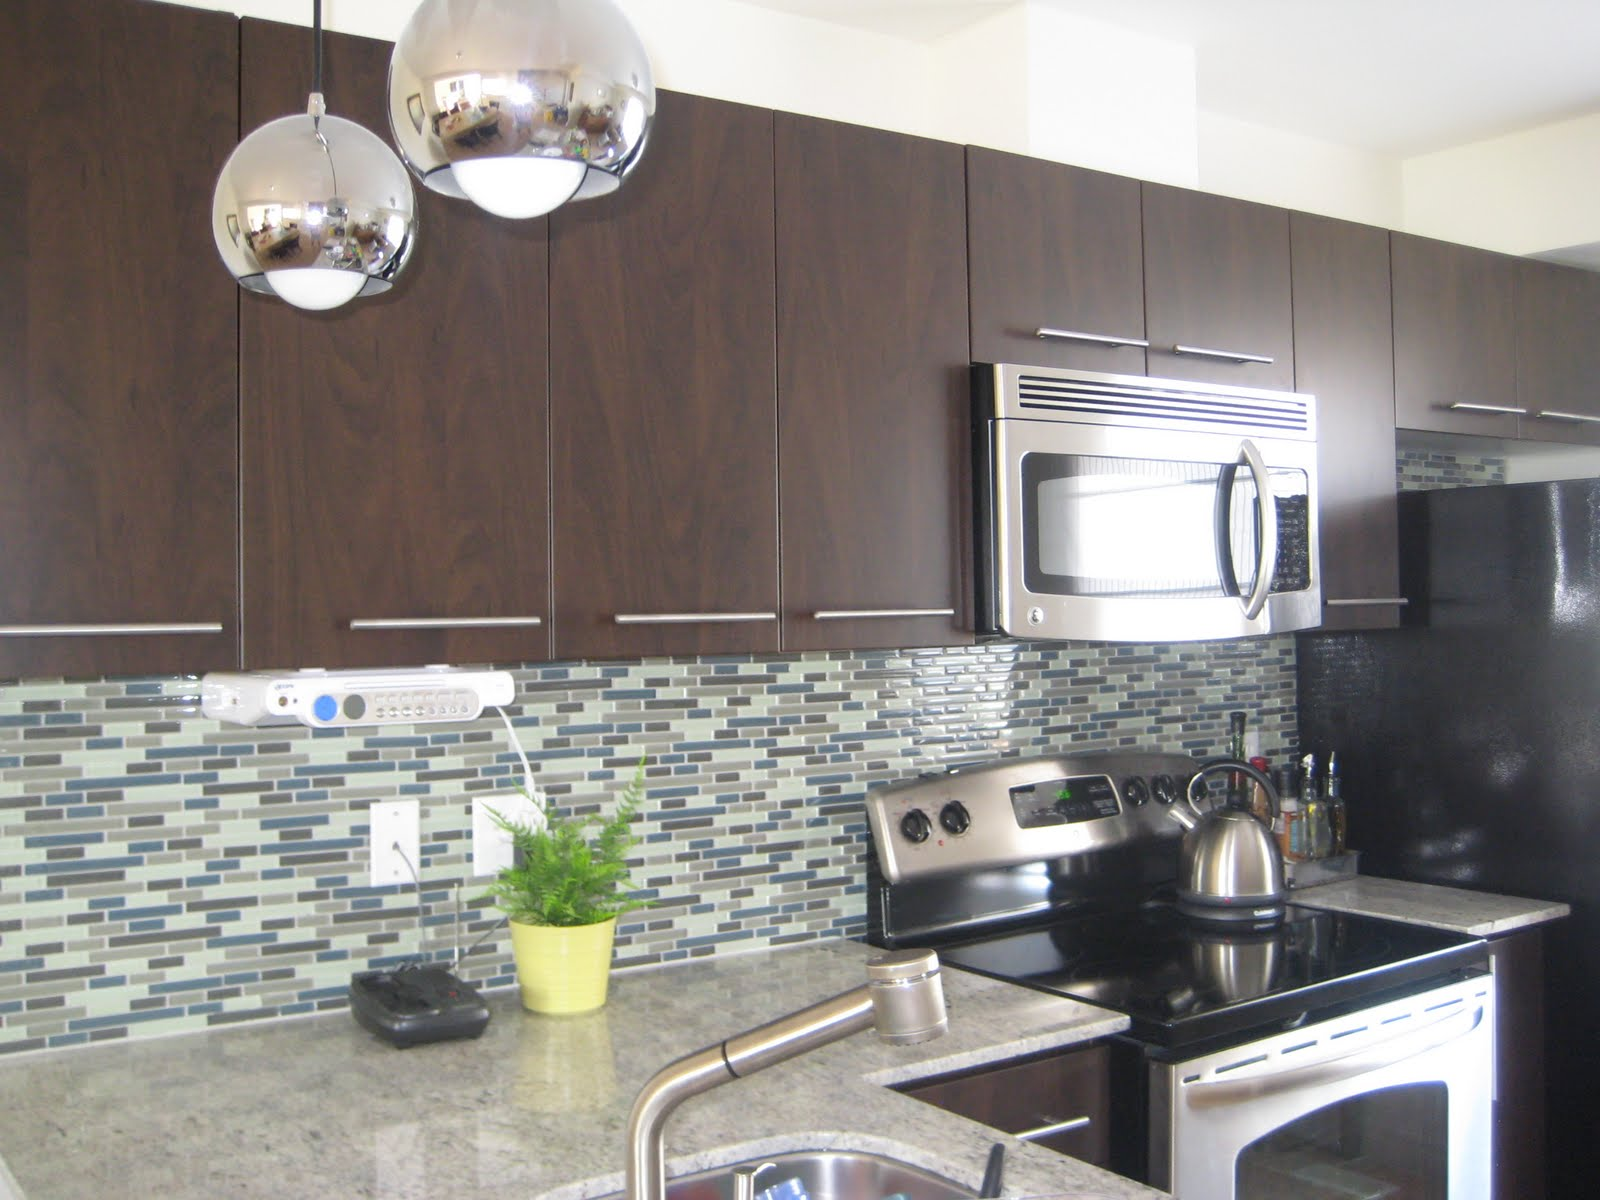 Backsplash  http://.xtile.net/